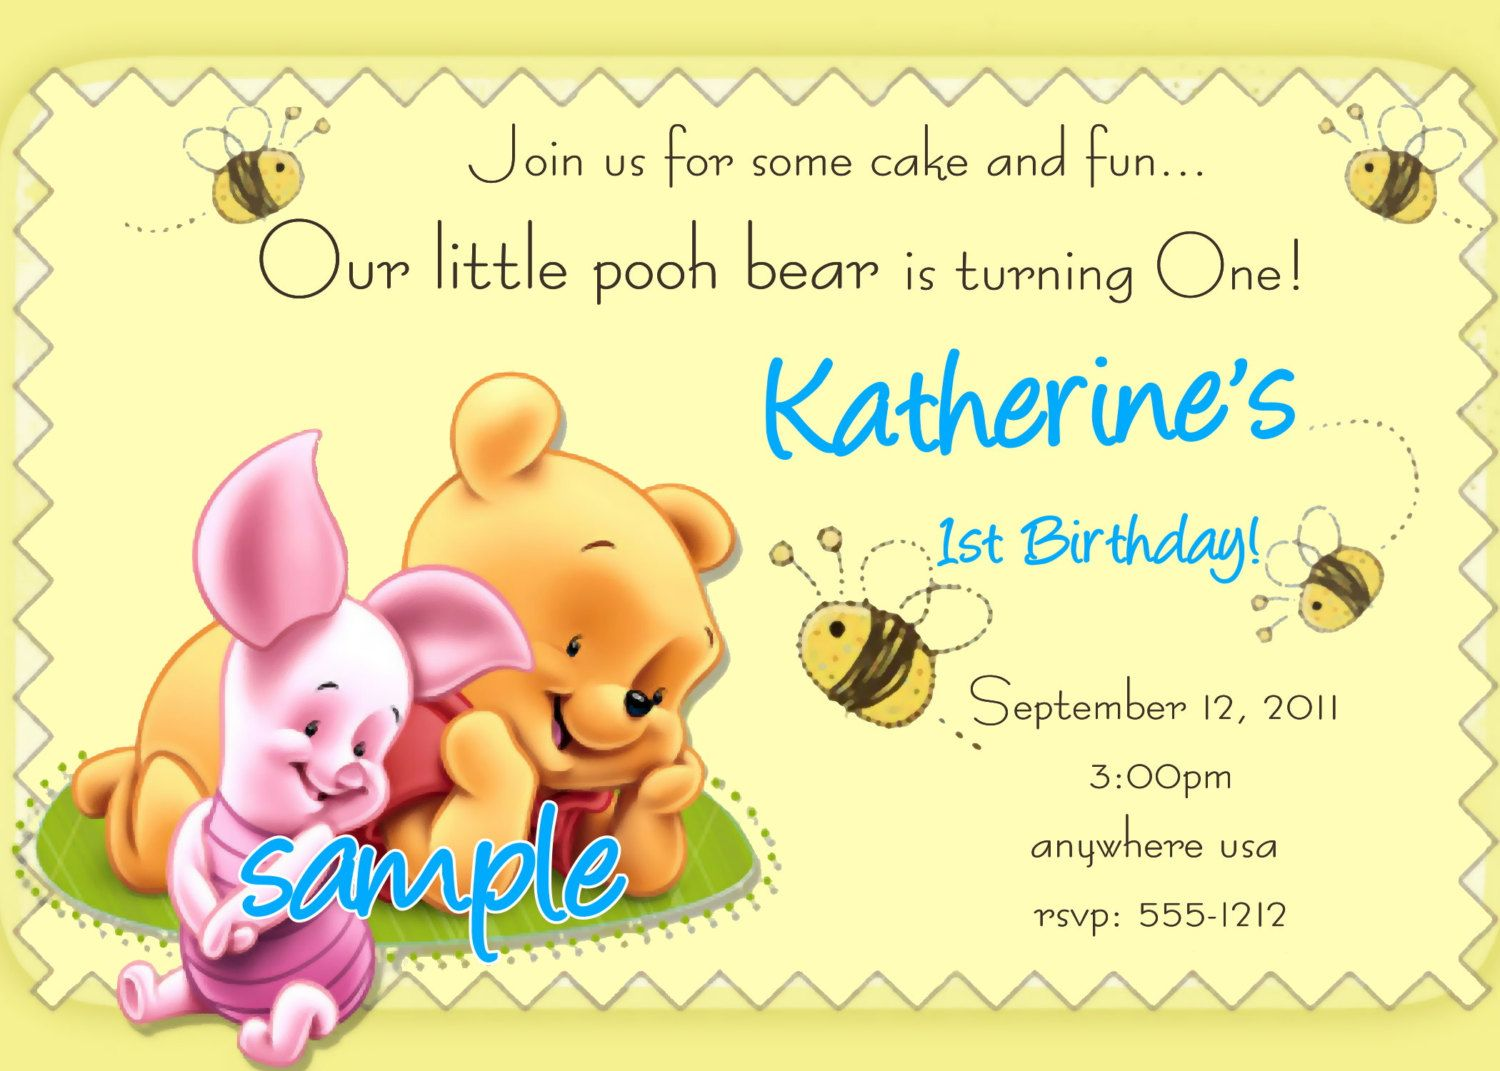 Birthday Invitation Card Maker Free Birthday Invitation Card - Birthday party invitation card maker free